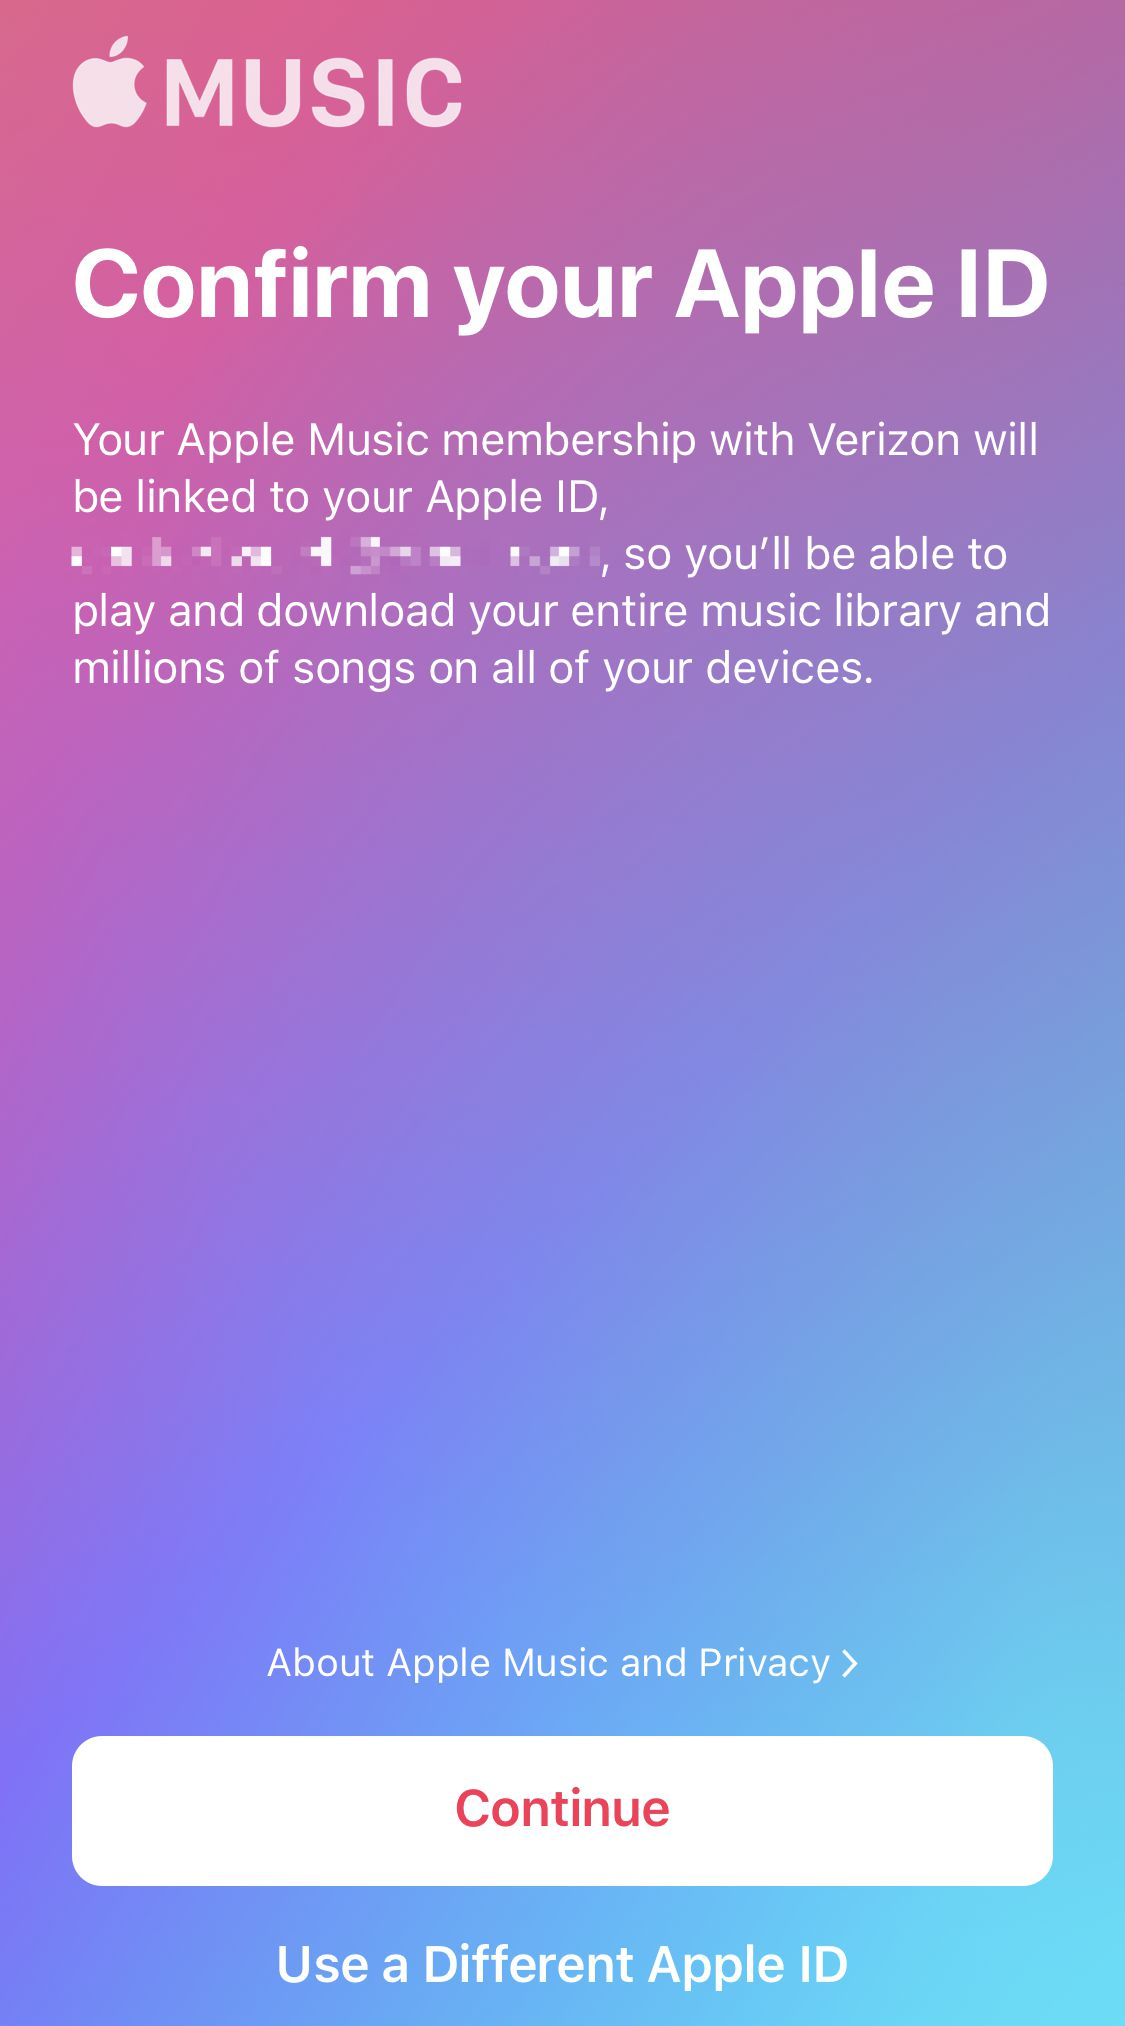 How to get six free months of Apple Music on Verizon - The Verge